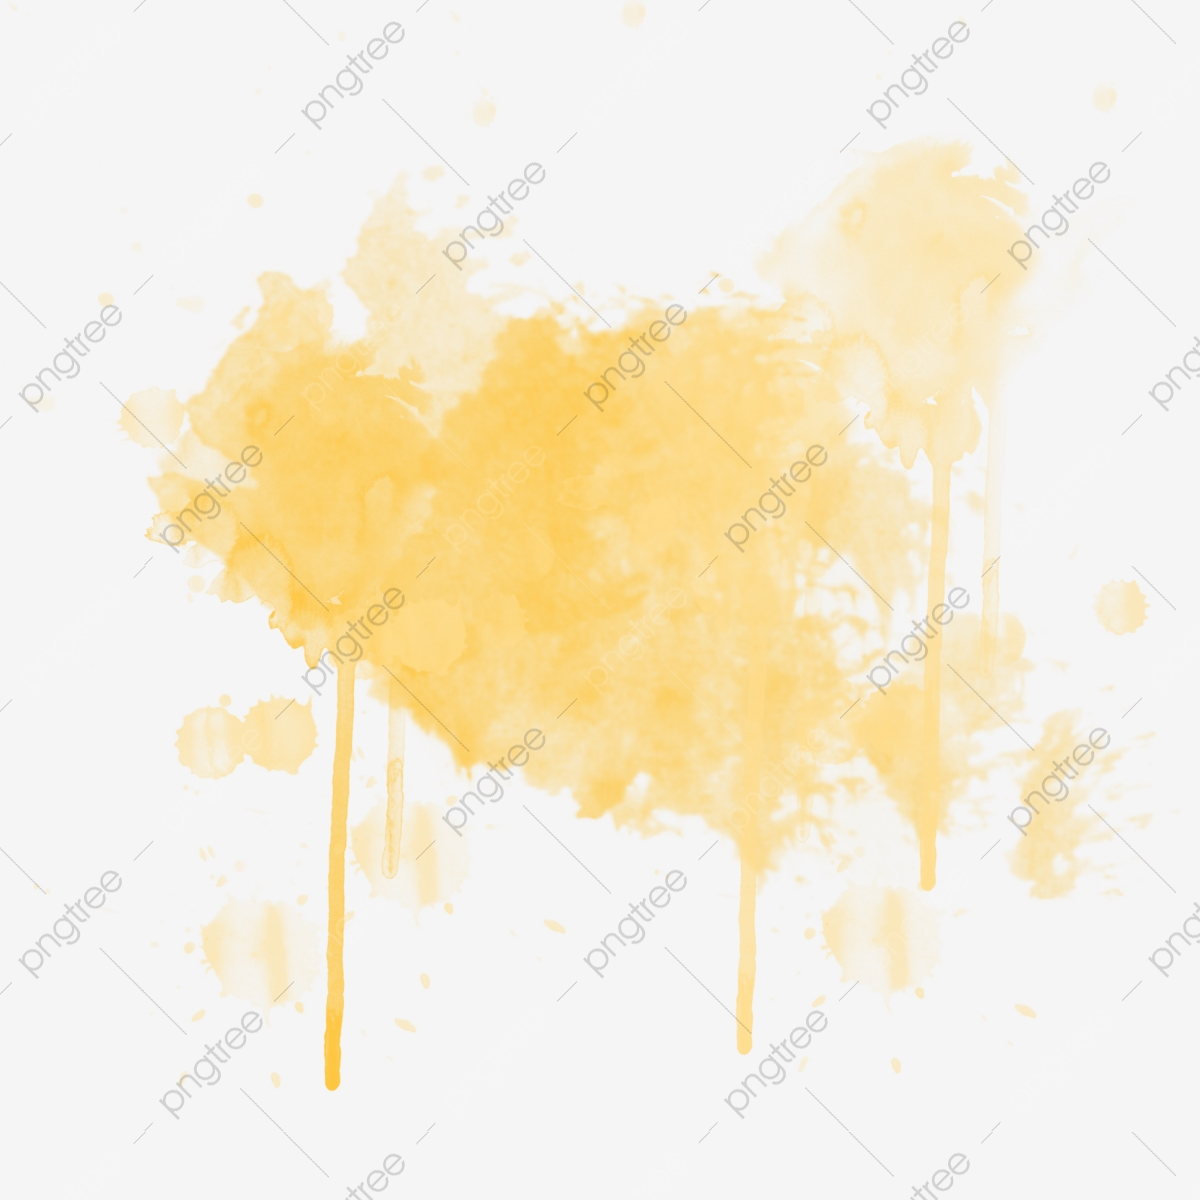 Yellow Smudge Ink Illustration Yellow Ink Smudge Png Transparent Clipart Image And Psd File For Free Download